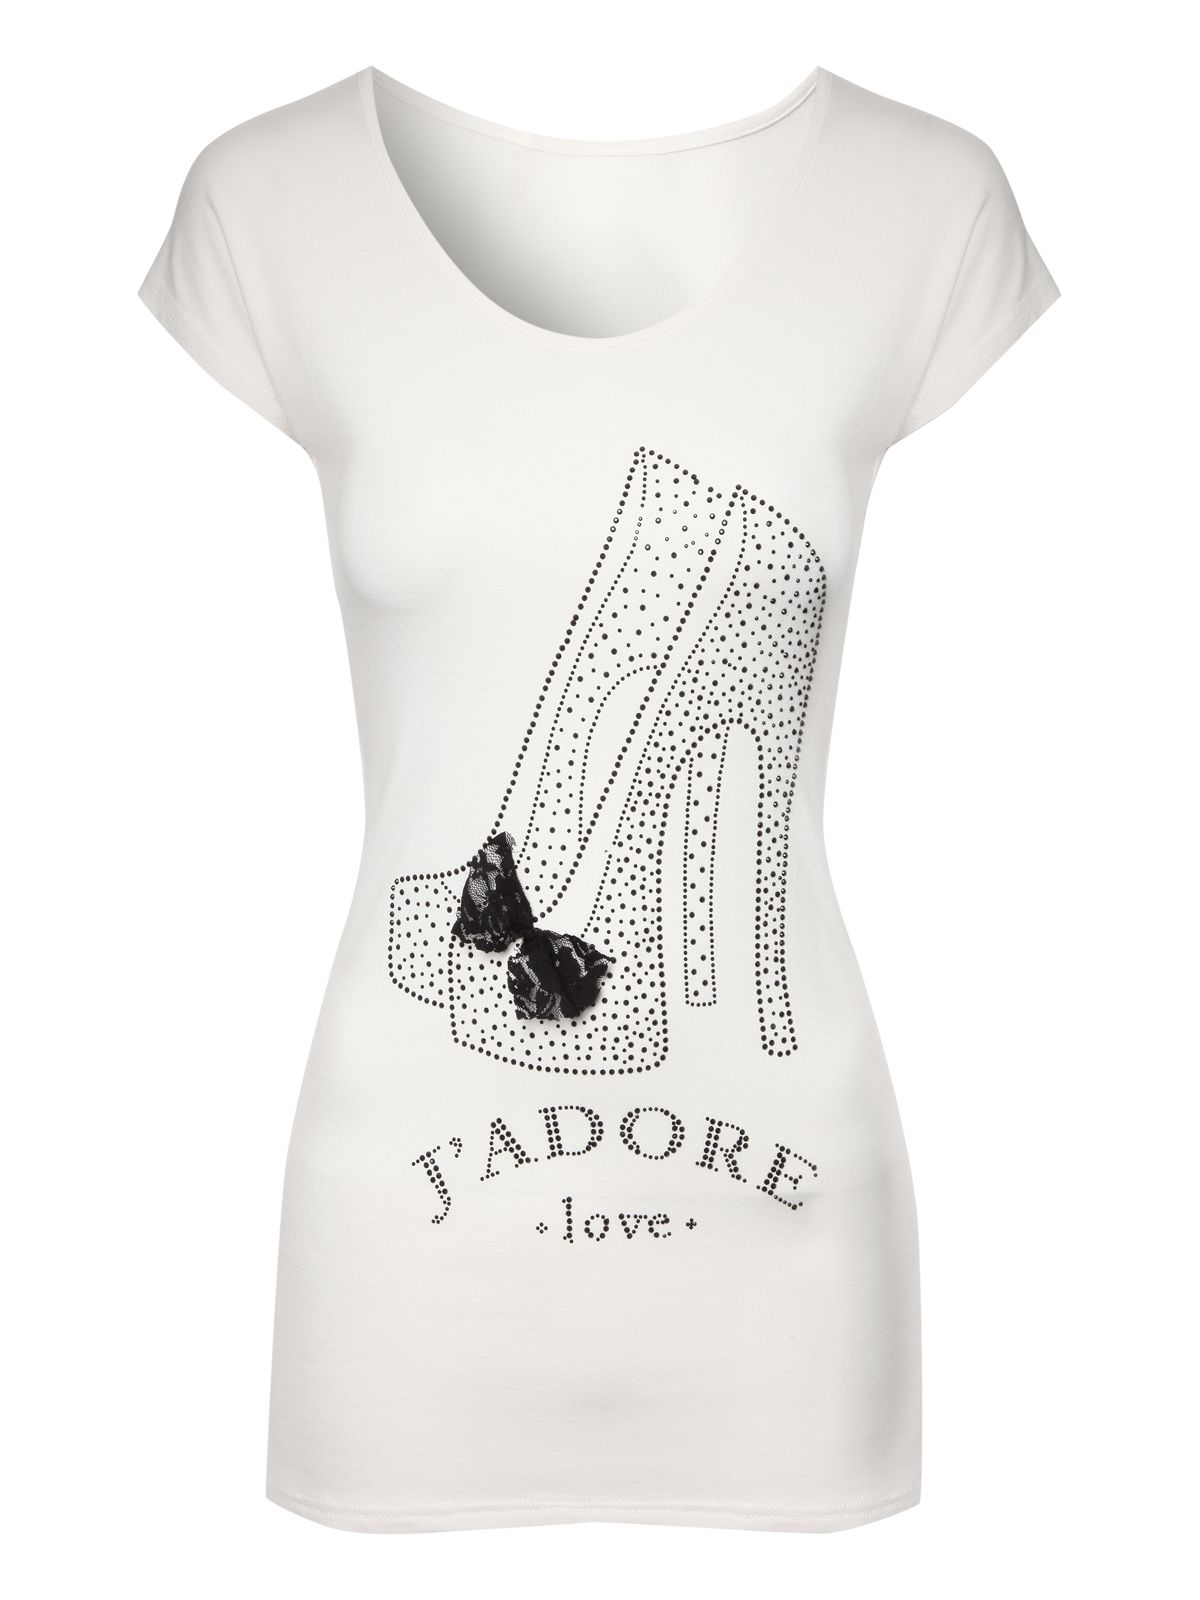 Embellished Shoe T-shirt